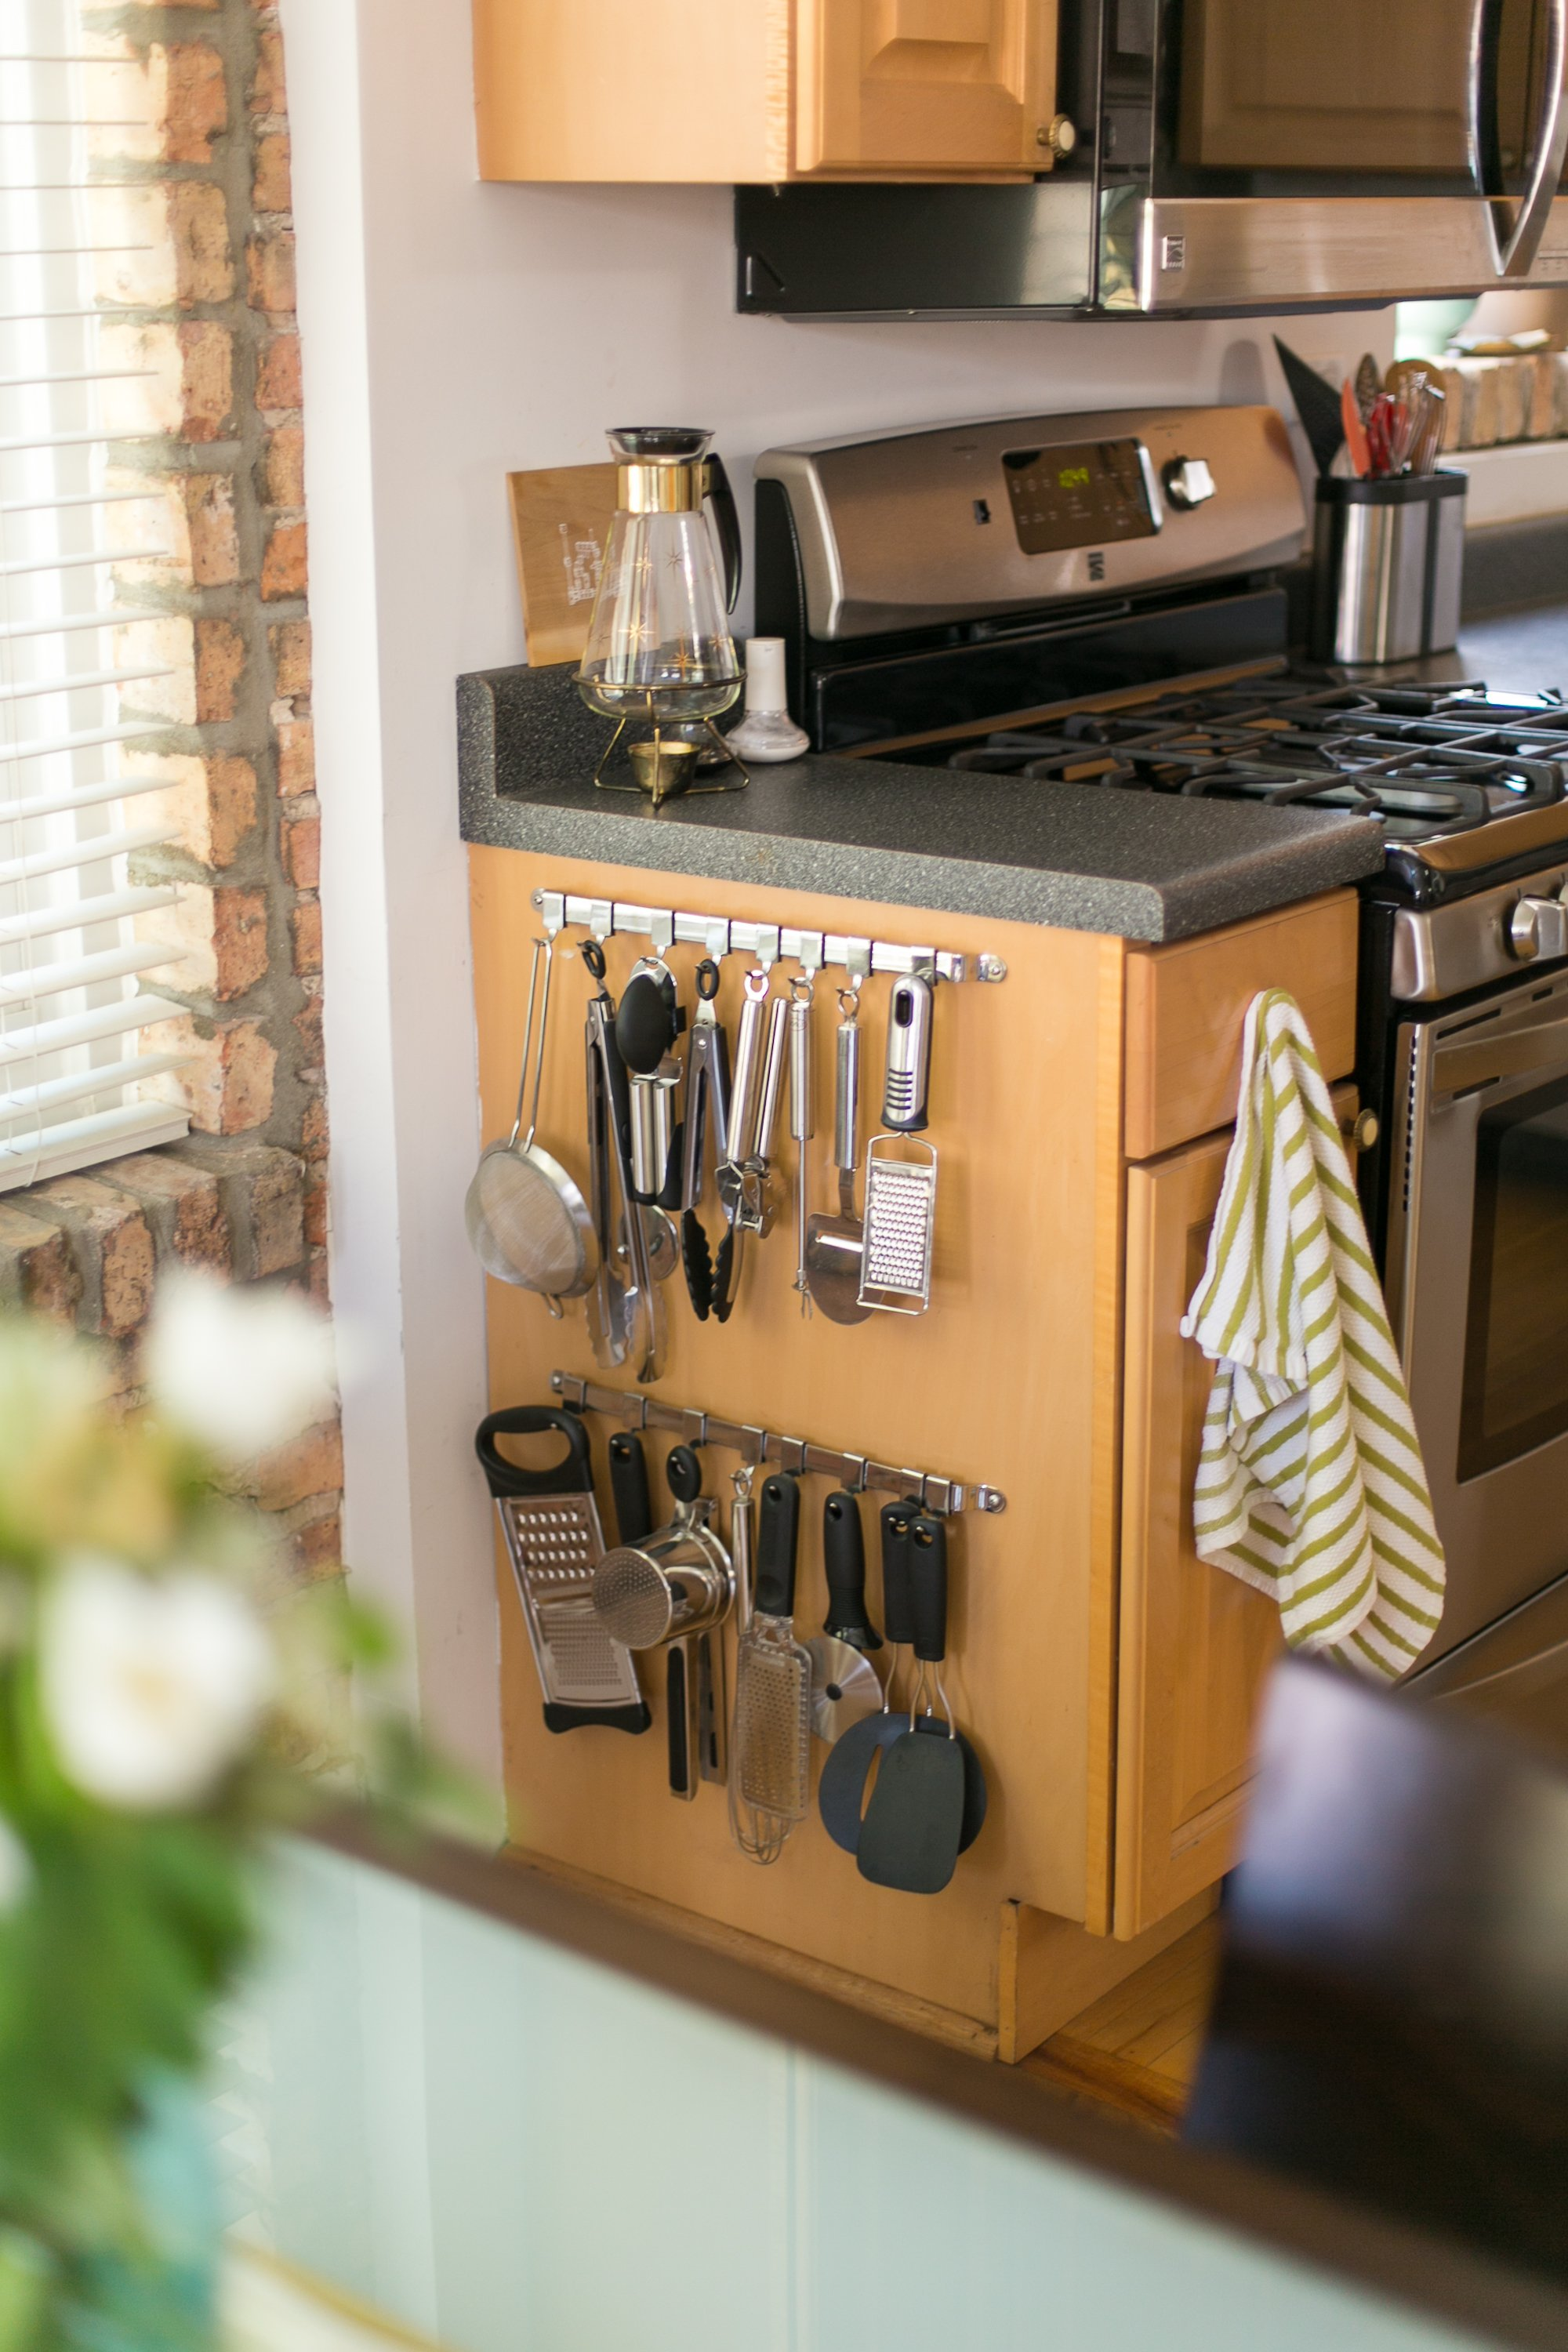 The 21 Best Storage Ideas for Small Kitchens | Kitchn Narrow Kitchen Small Ideas Expand on small kitchen layouts, small kitchen appliances retailer, small kitchen tables, small kitchen with corner sink, small narrow kitchen cart, small narrow kitchen doors, medium narrow kitchen ideas, small kitchen remodel, narrow kitchen remodeling ideas, small narrow modern kitchens, small narrow corner kitchen sinks, small kitchen makeovers, small kitchen sink with dishwasher, narrow kitchen island ideas, small space saver ideas, small narrow bedrooms, small kitchen designs, small kitchen with microwave, small narrow garden, small kitchen plans,